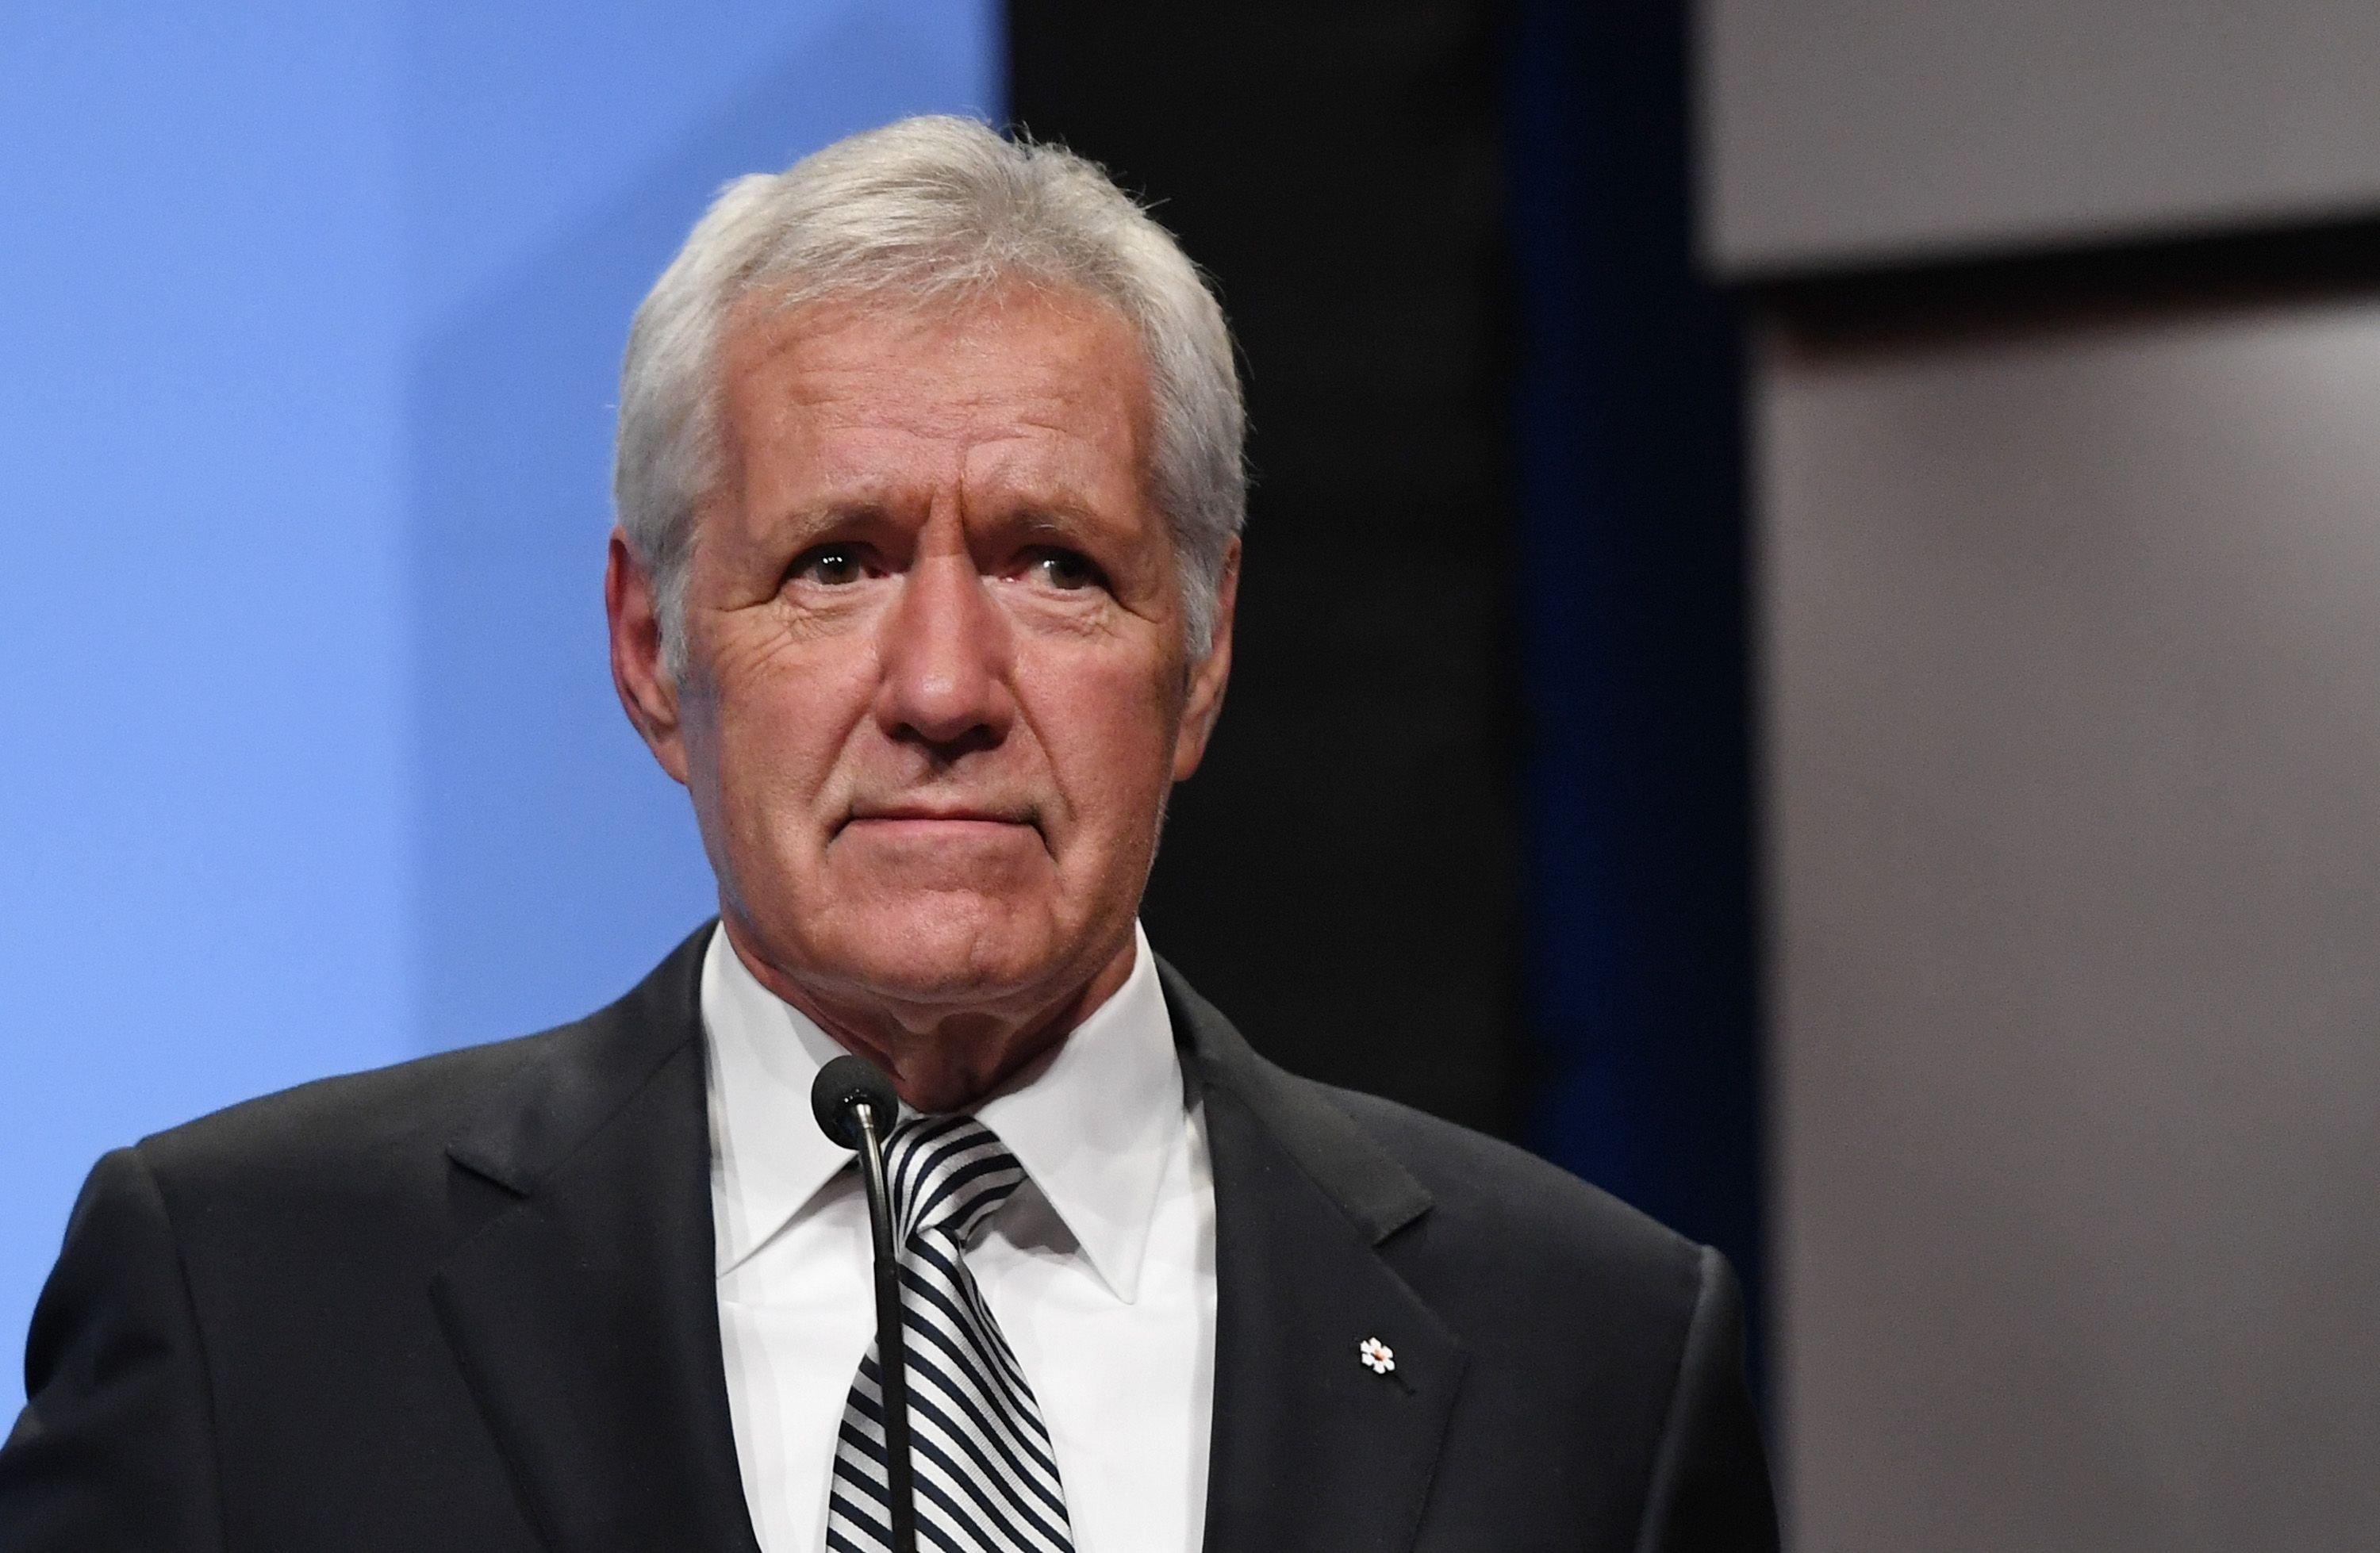 Alex Trebek was inducted into the National Association of Broadcasters Broadcasting Hall of Fame during the NAB Achievement in Broadcasting Dinner at Encore Las Vegas on April 9, 2018 | Photo: Getty Images